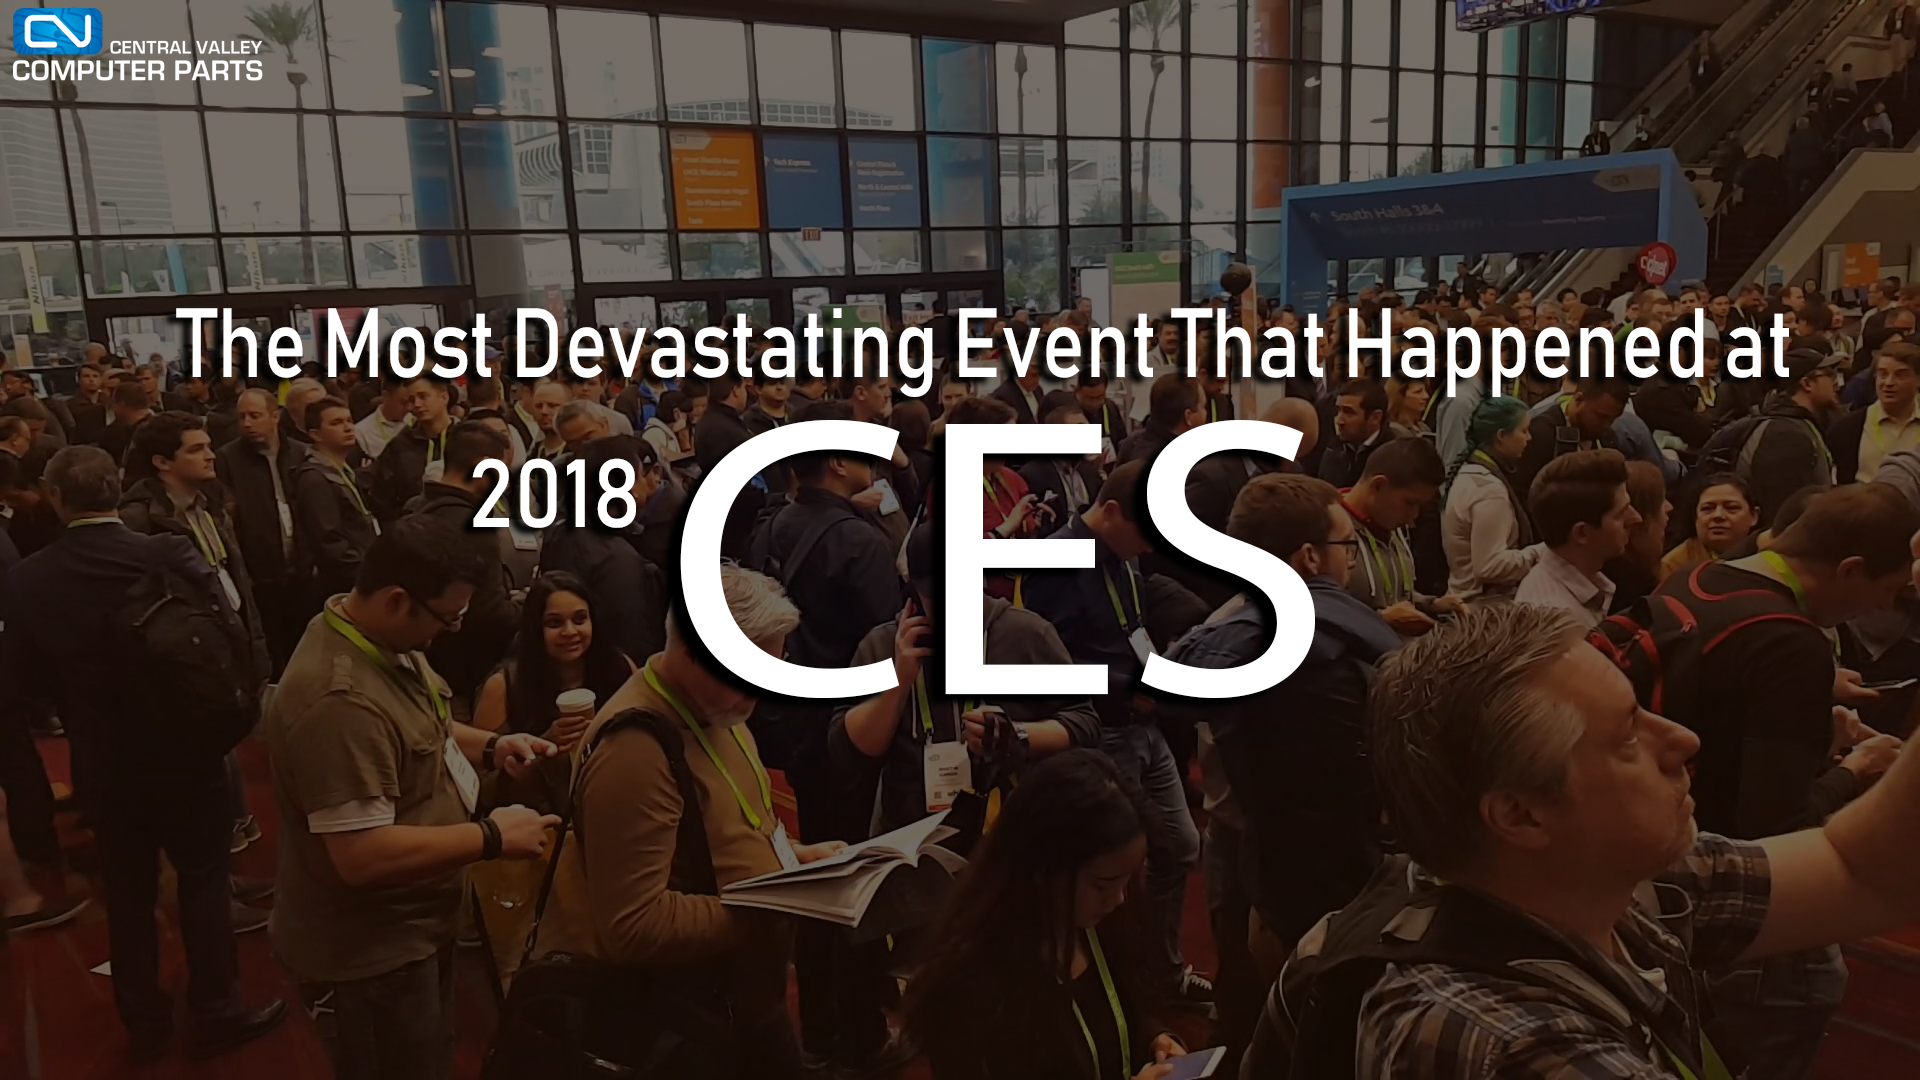 The most devastating event in CES history